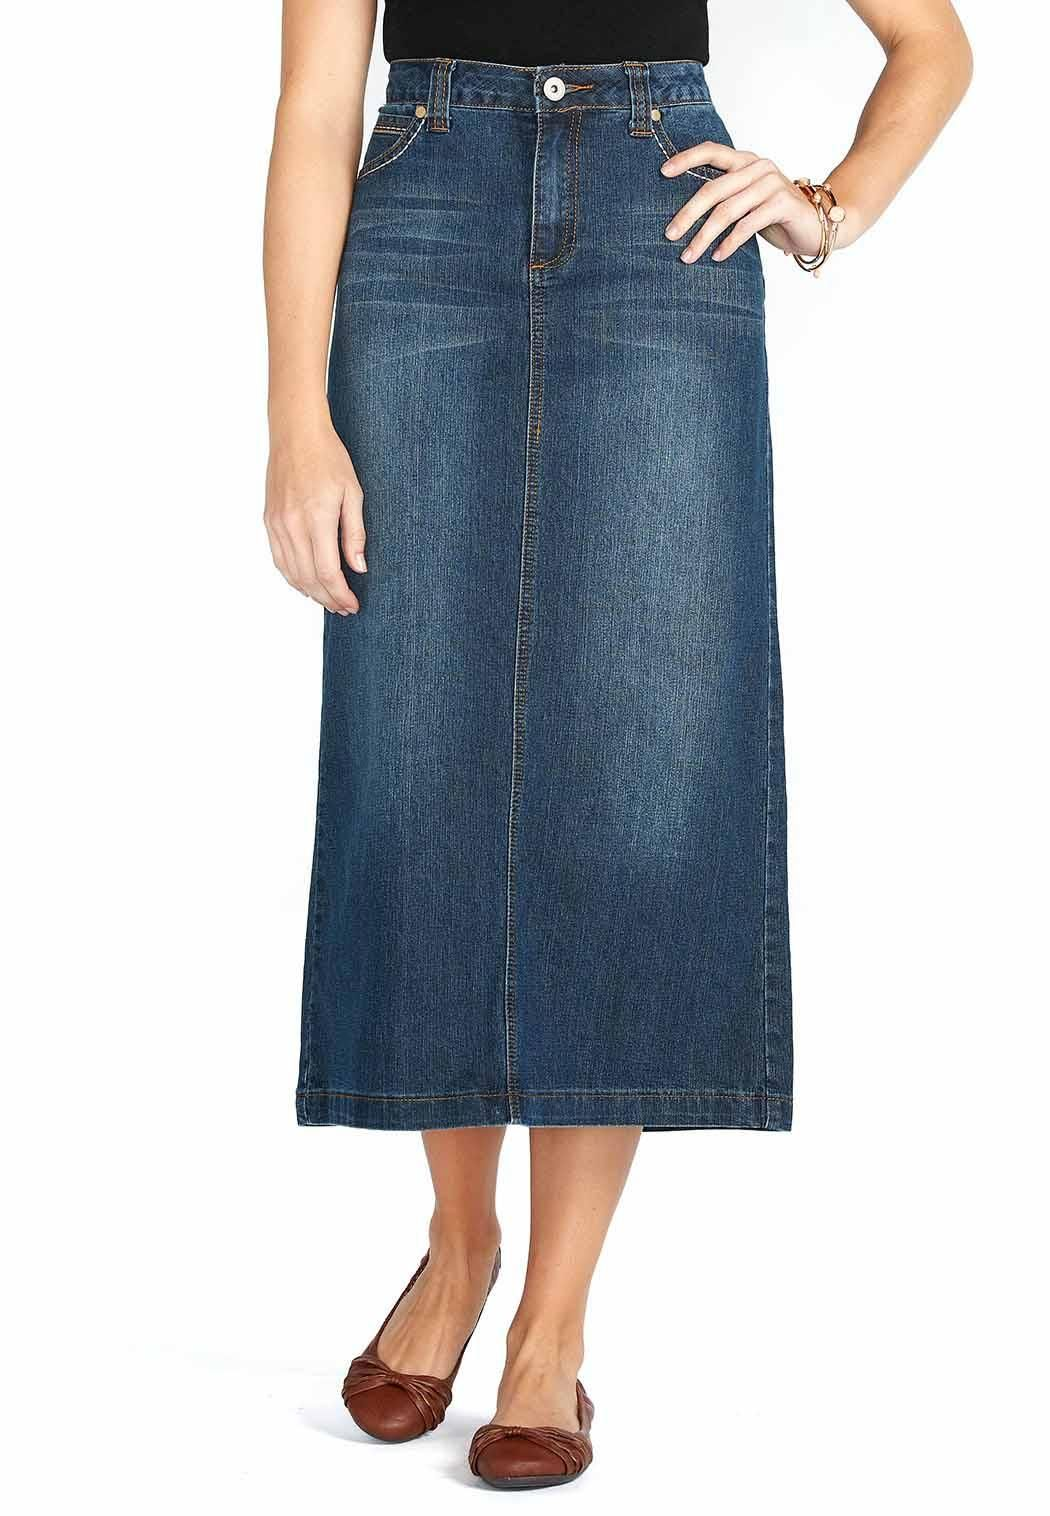 3e414c8d8 Long Dark Denim Skirt Skirts Cato Fashions | Perfectly Styled in ...